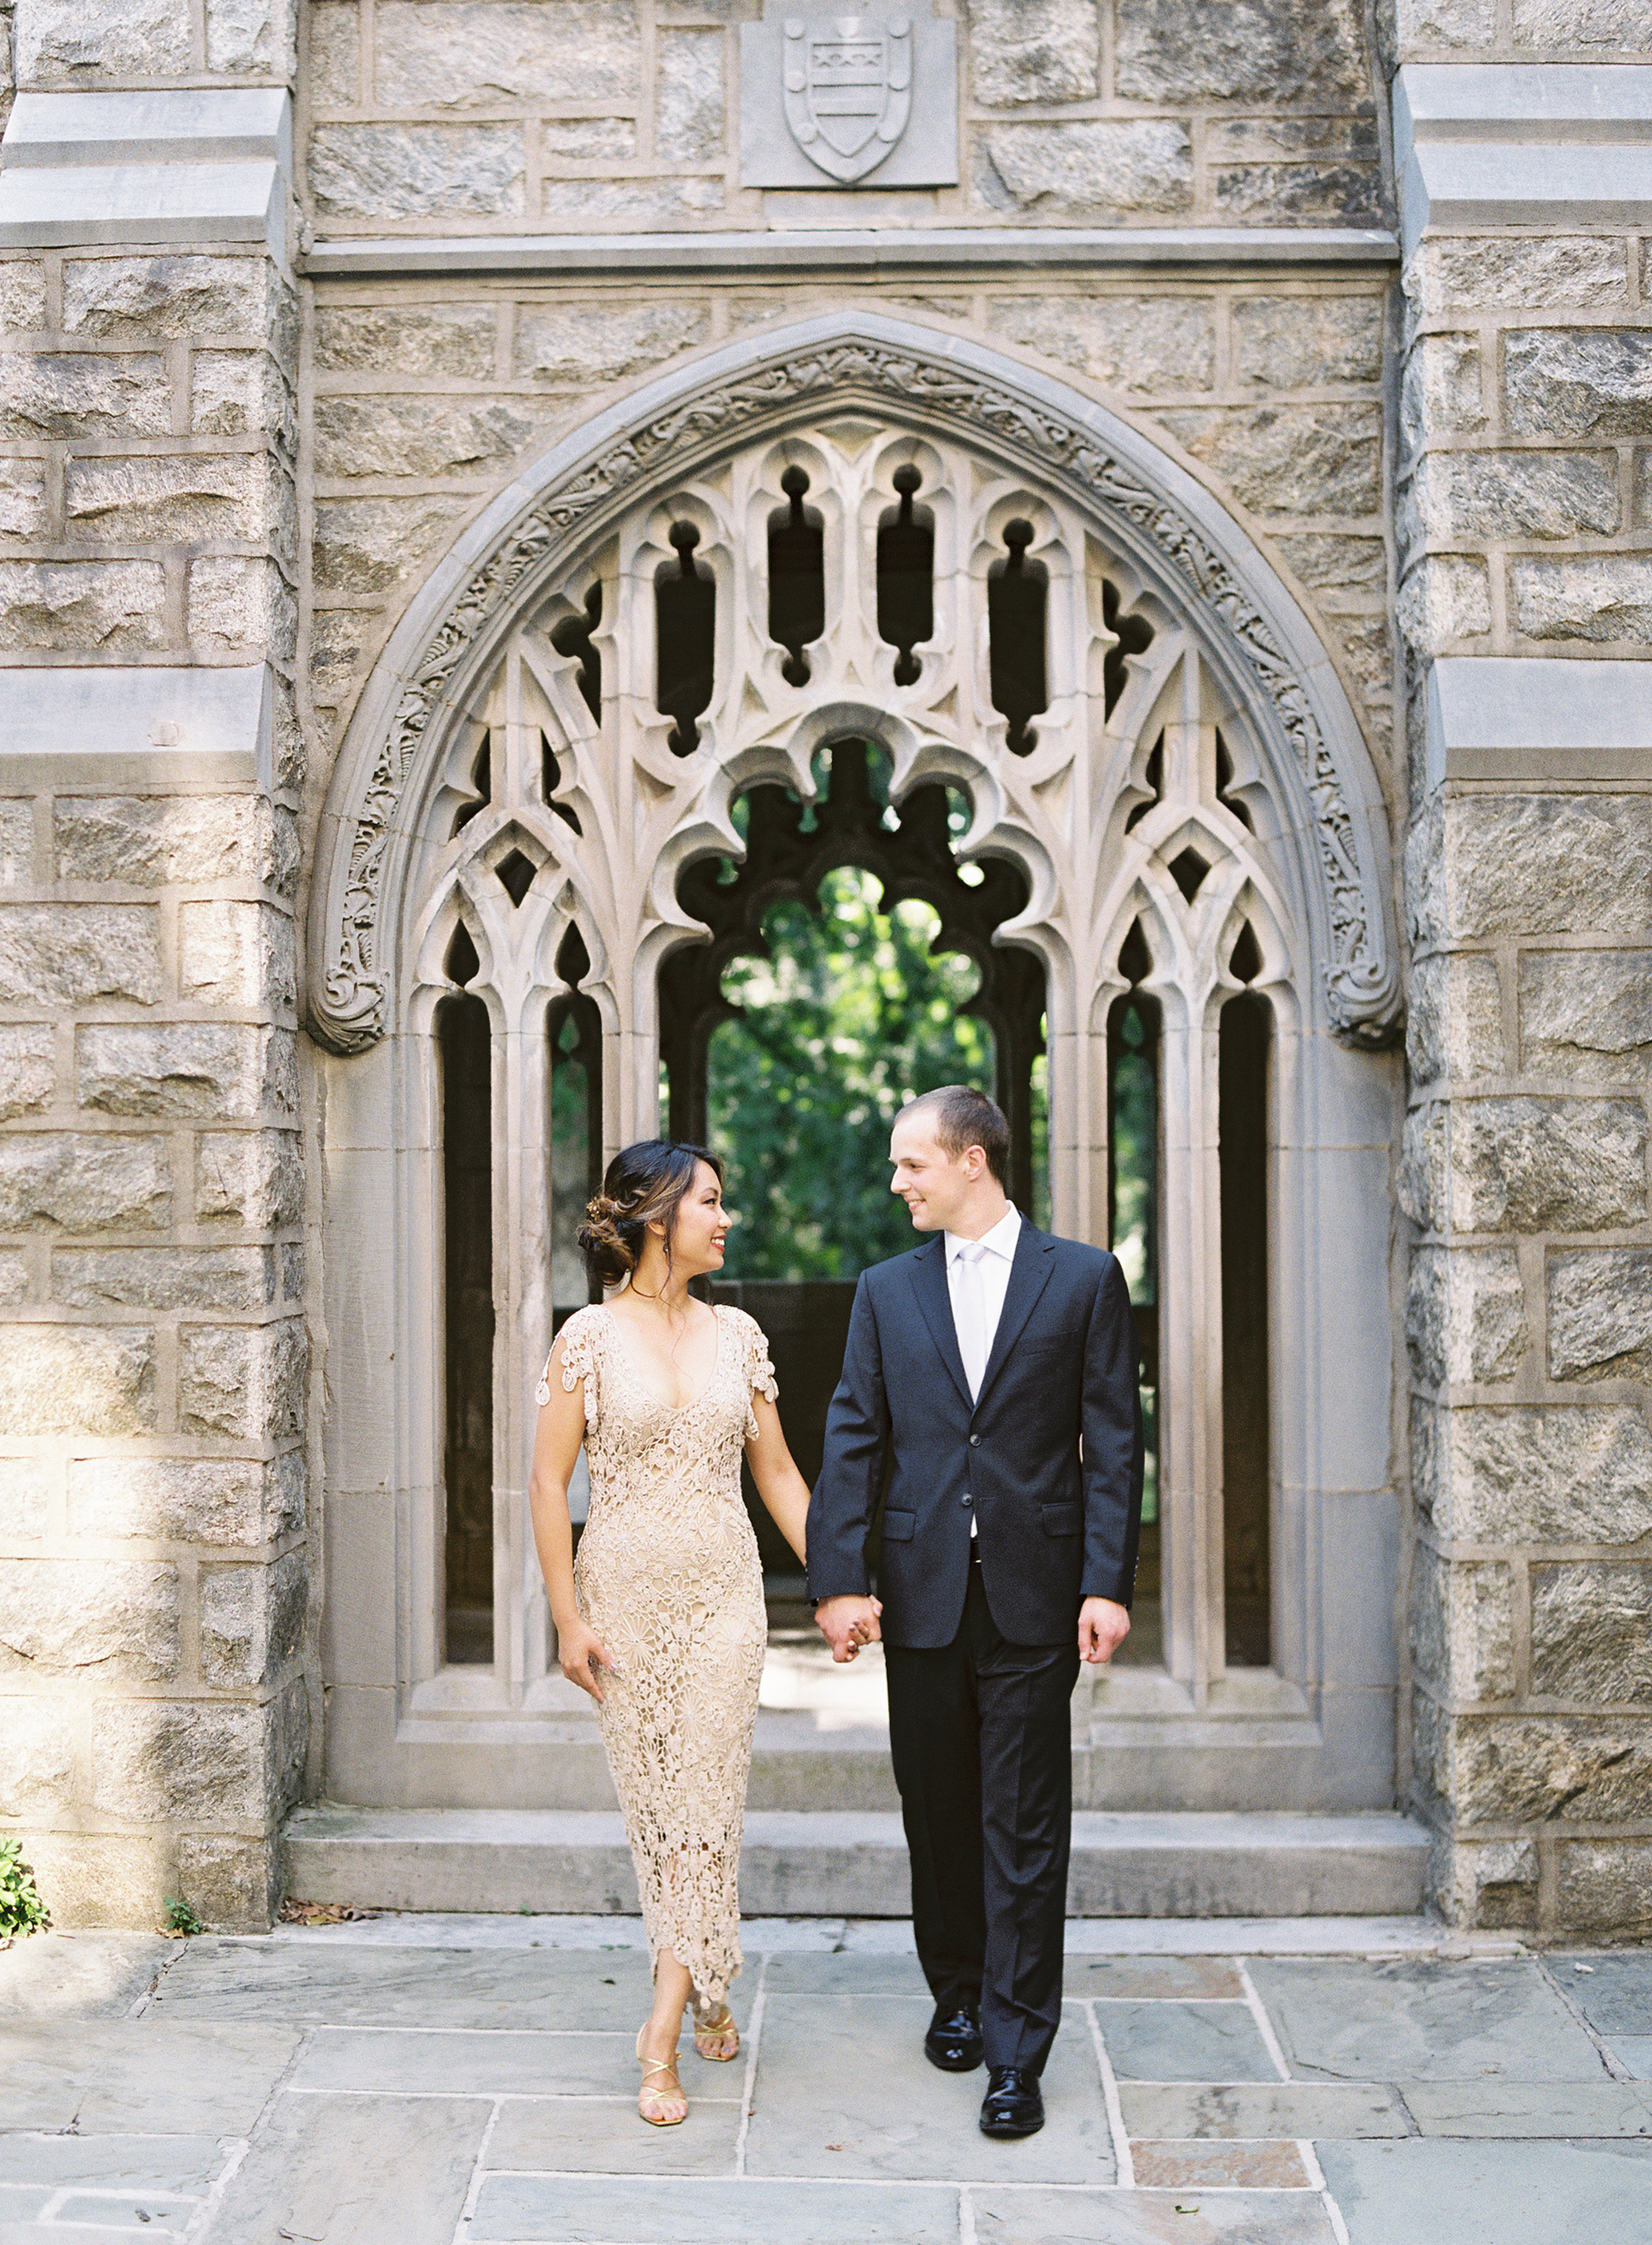 Meghan Mehan Photography - New York City Film Wedding Photographer | New York | San Francisco | Napa | Sonoma | Los Angeles 012.jpg